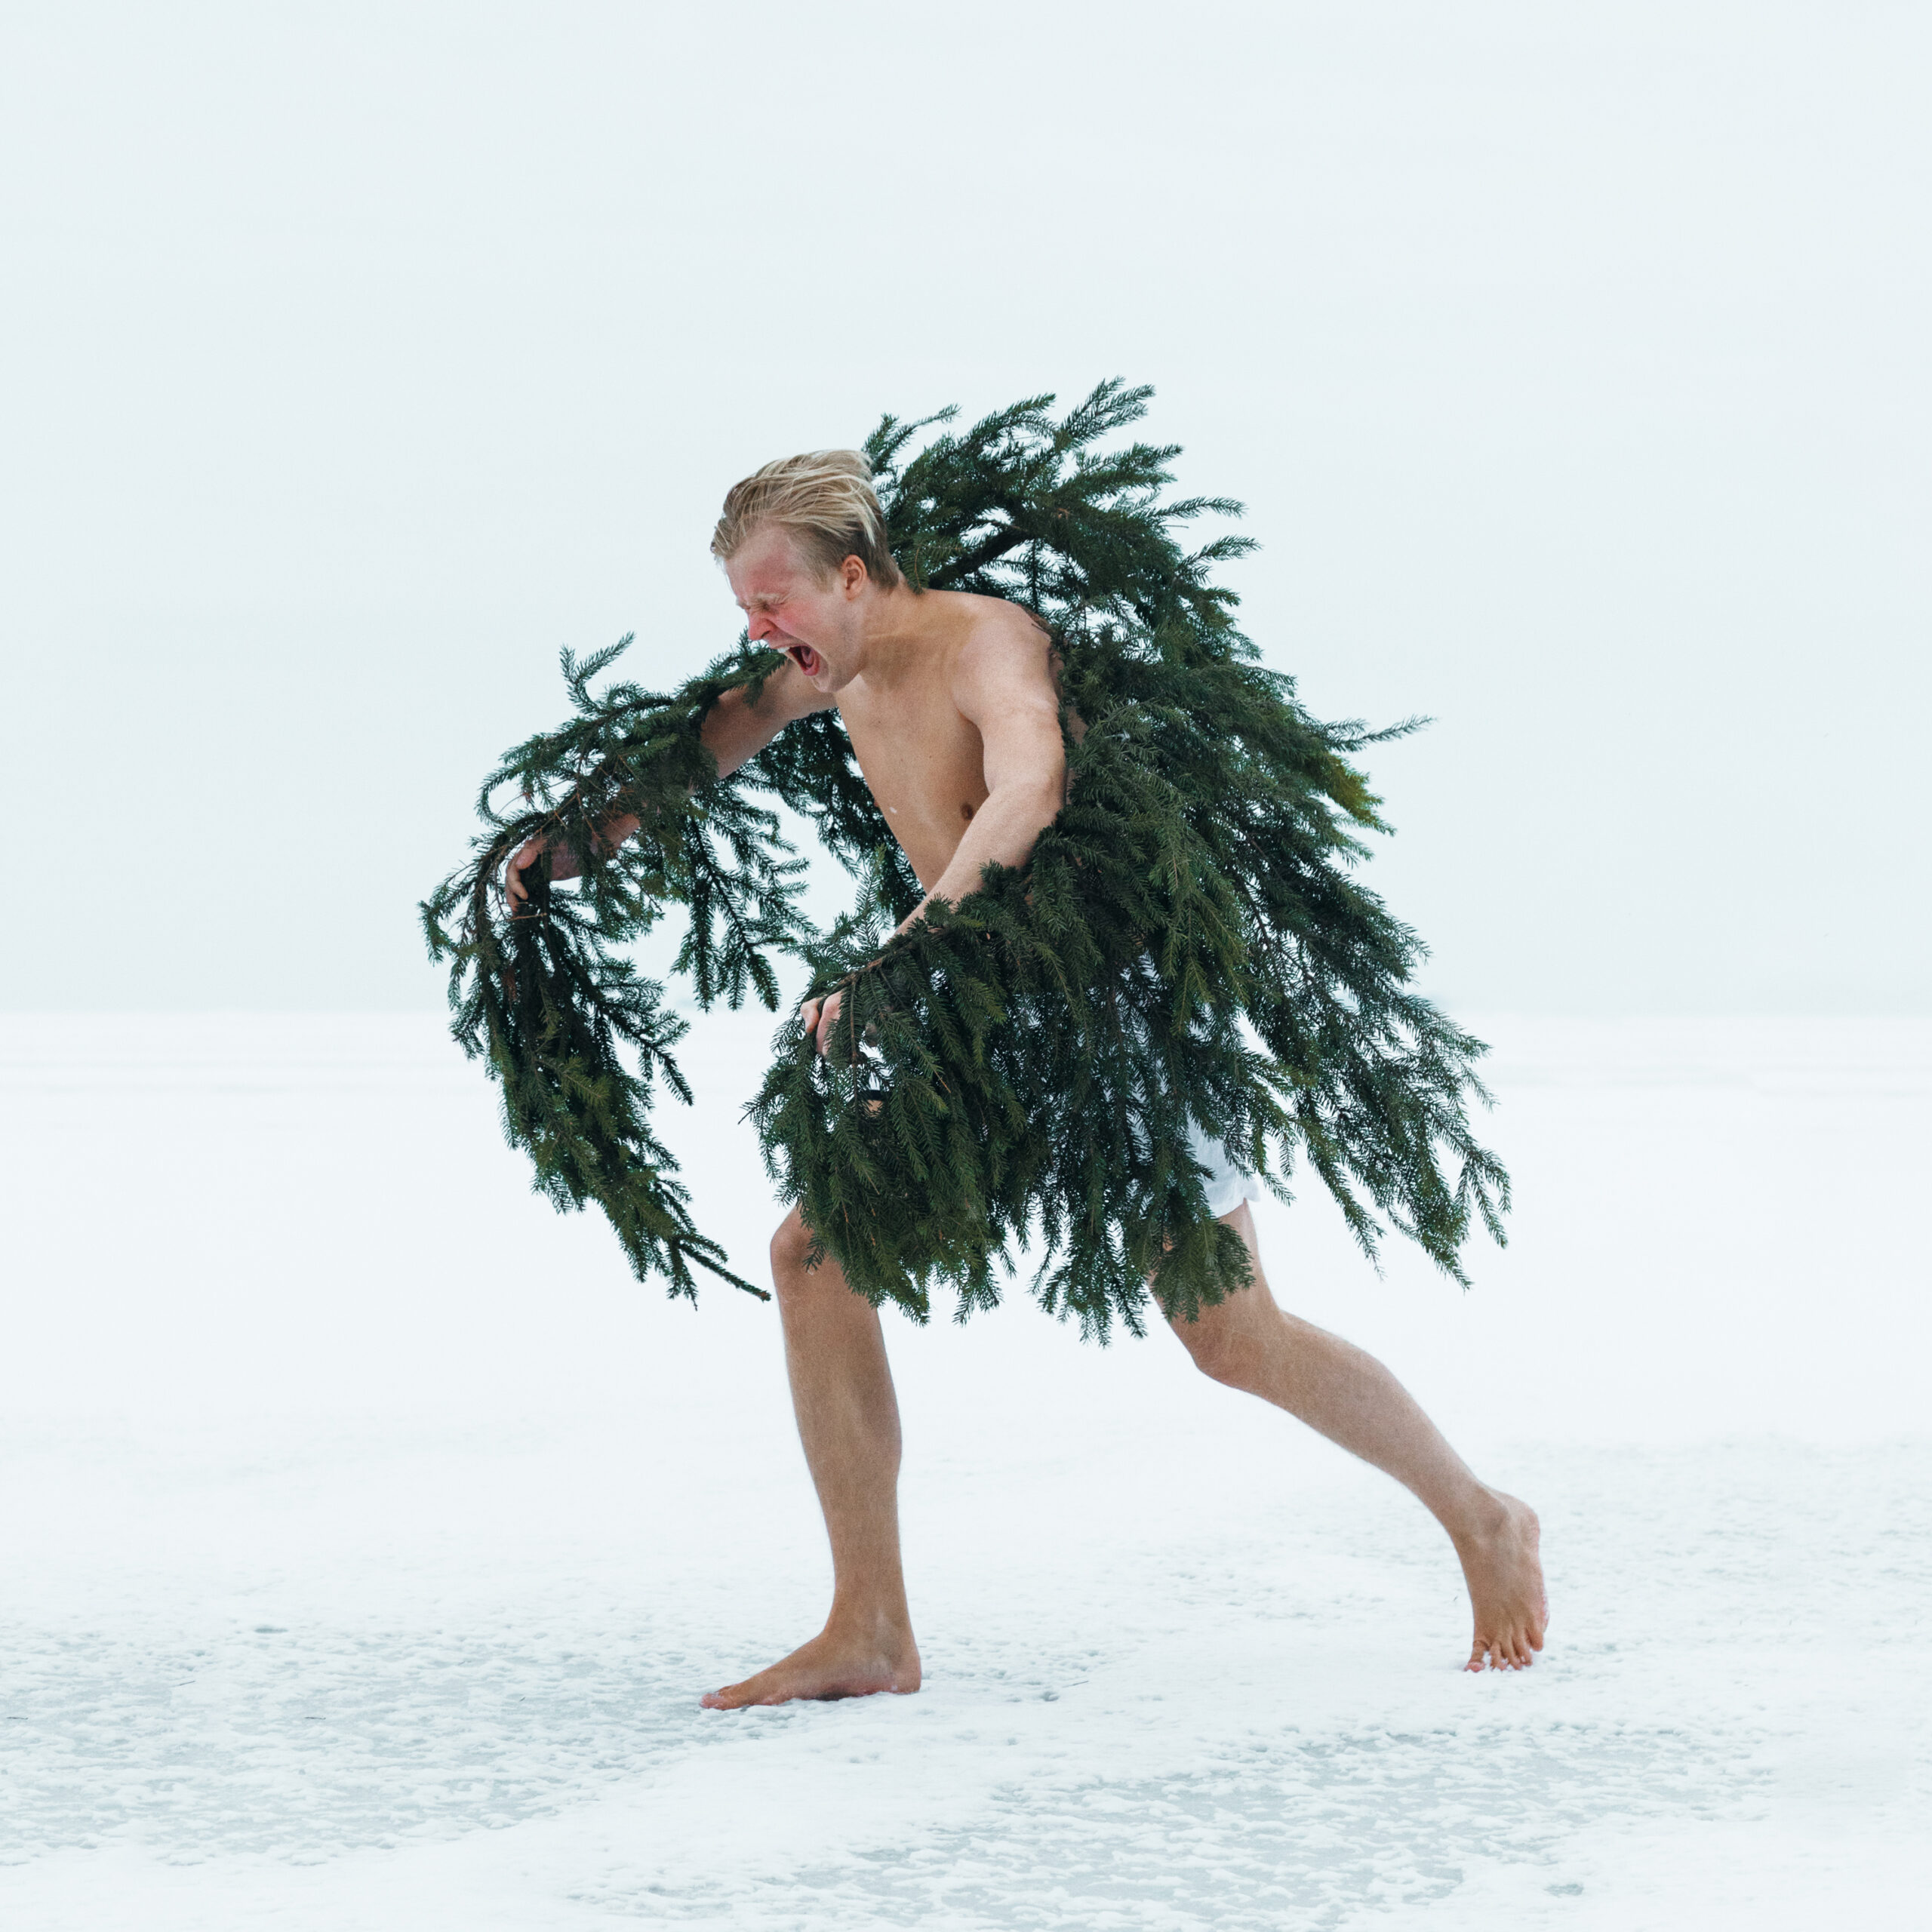 A person snding on snow and wearing pine branches